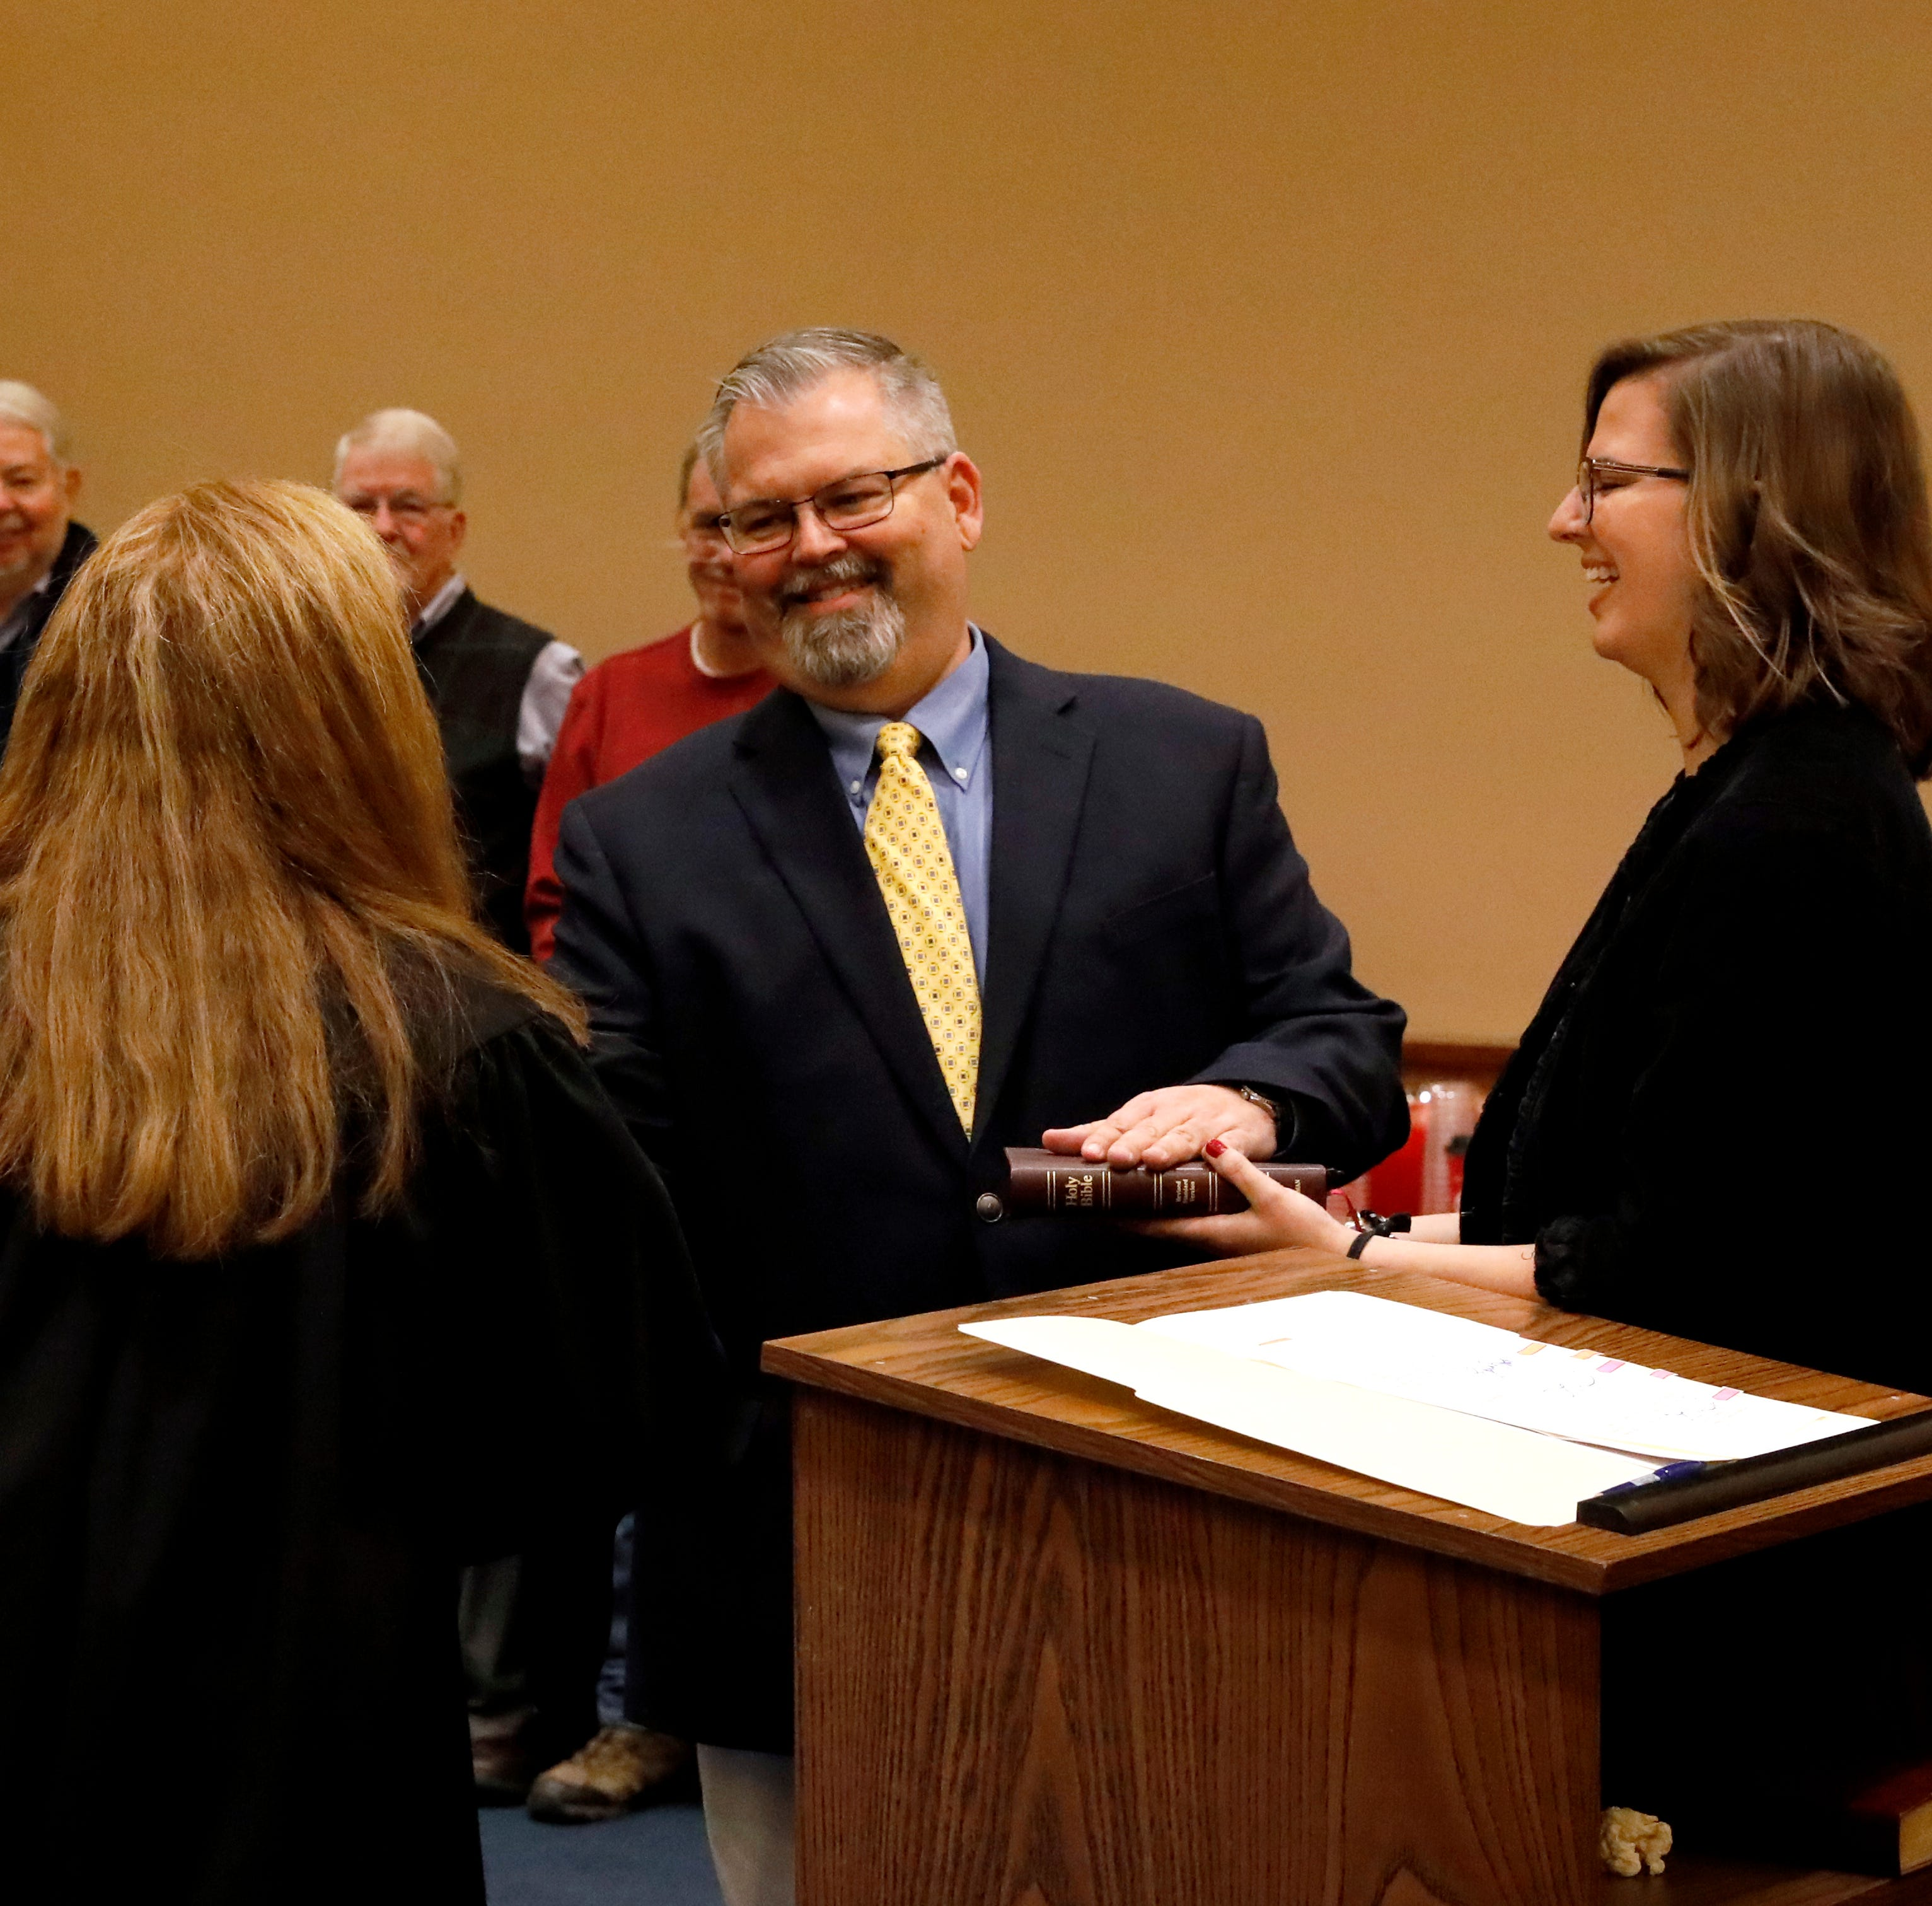 Jeff Fix sworn in as county commissioner